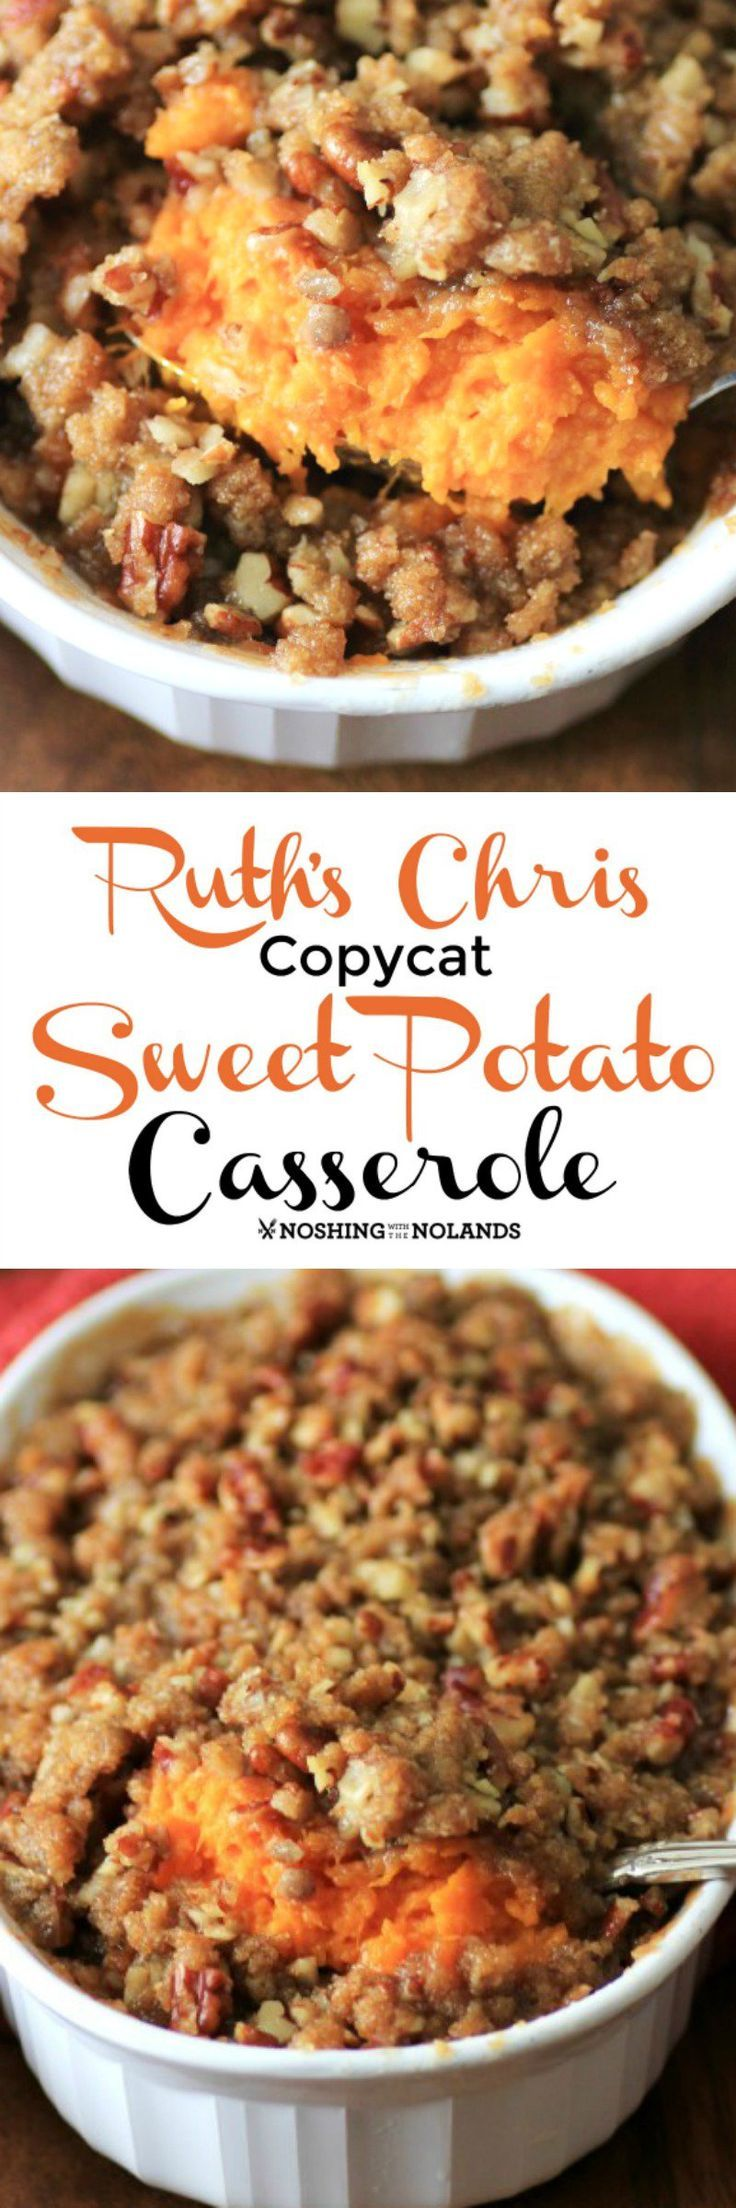 Ruth's Chris Copycat Sweet Potato Casserole is pure comfort food! So delicious you will want to serve it over the holidays and year round!